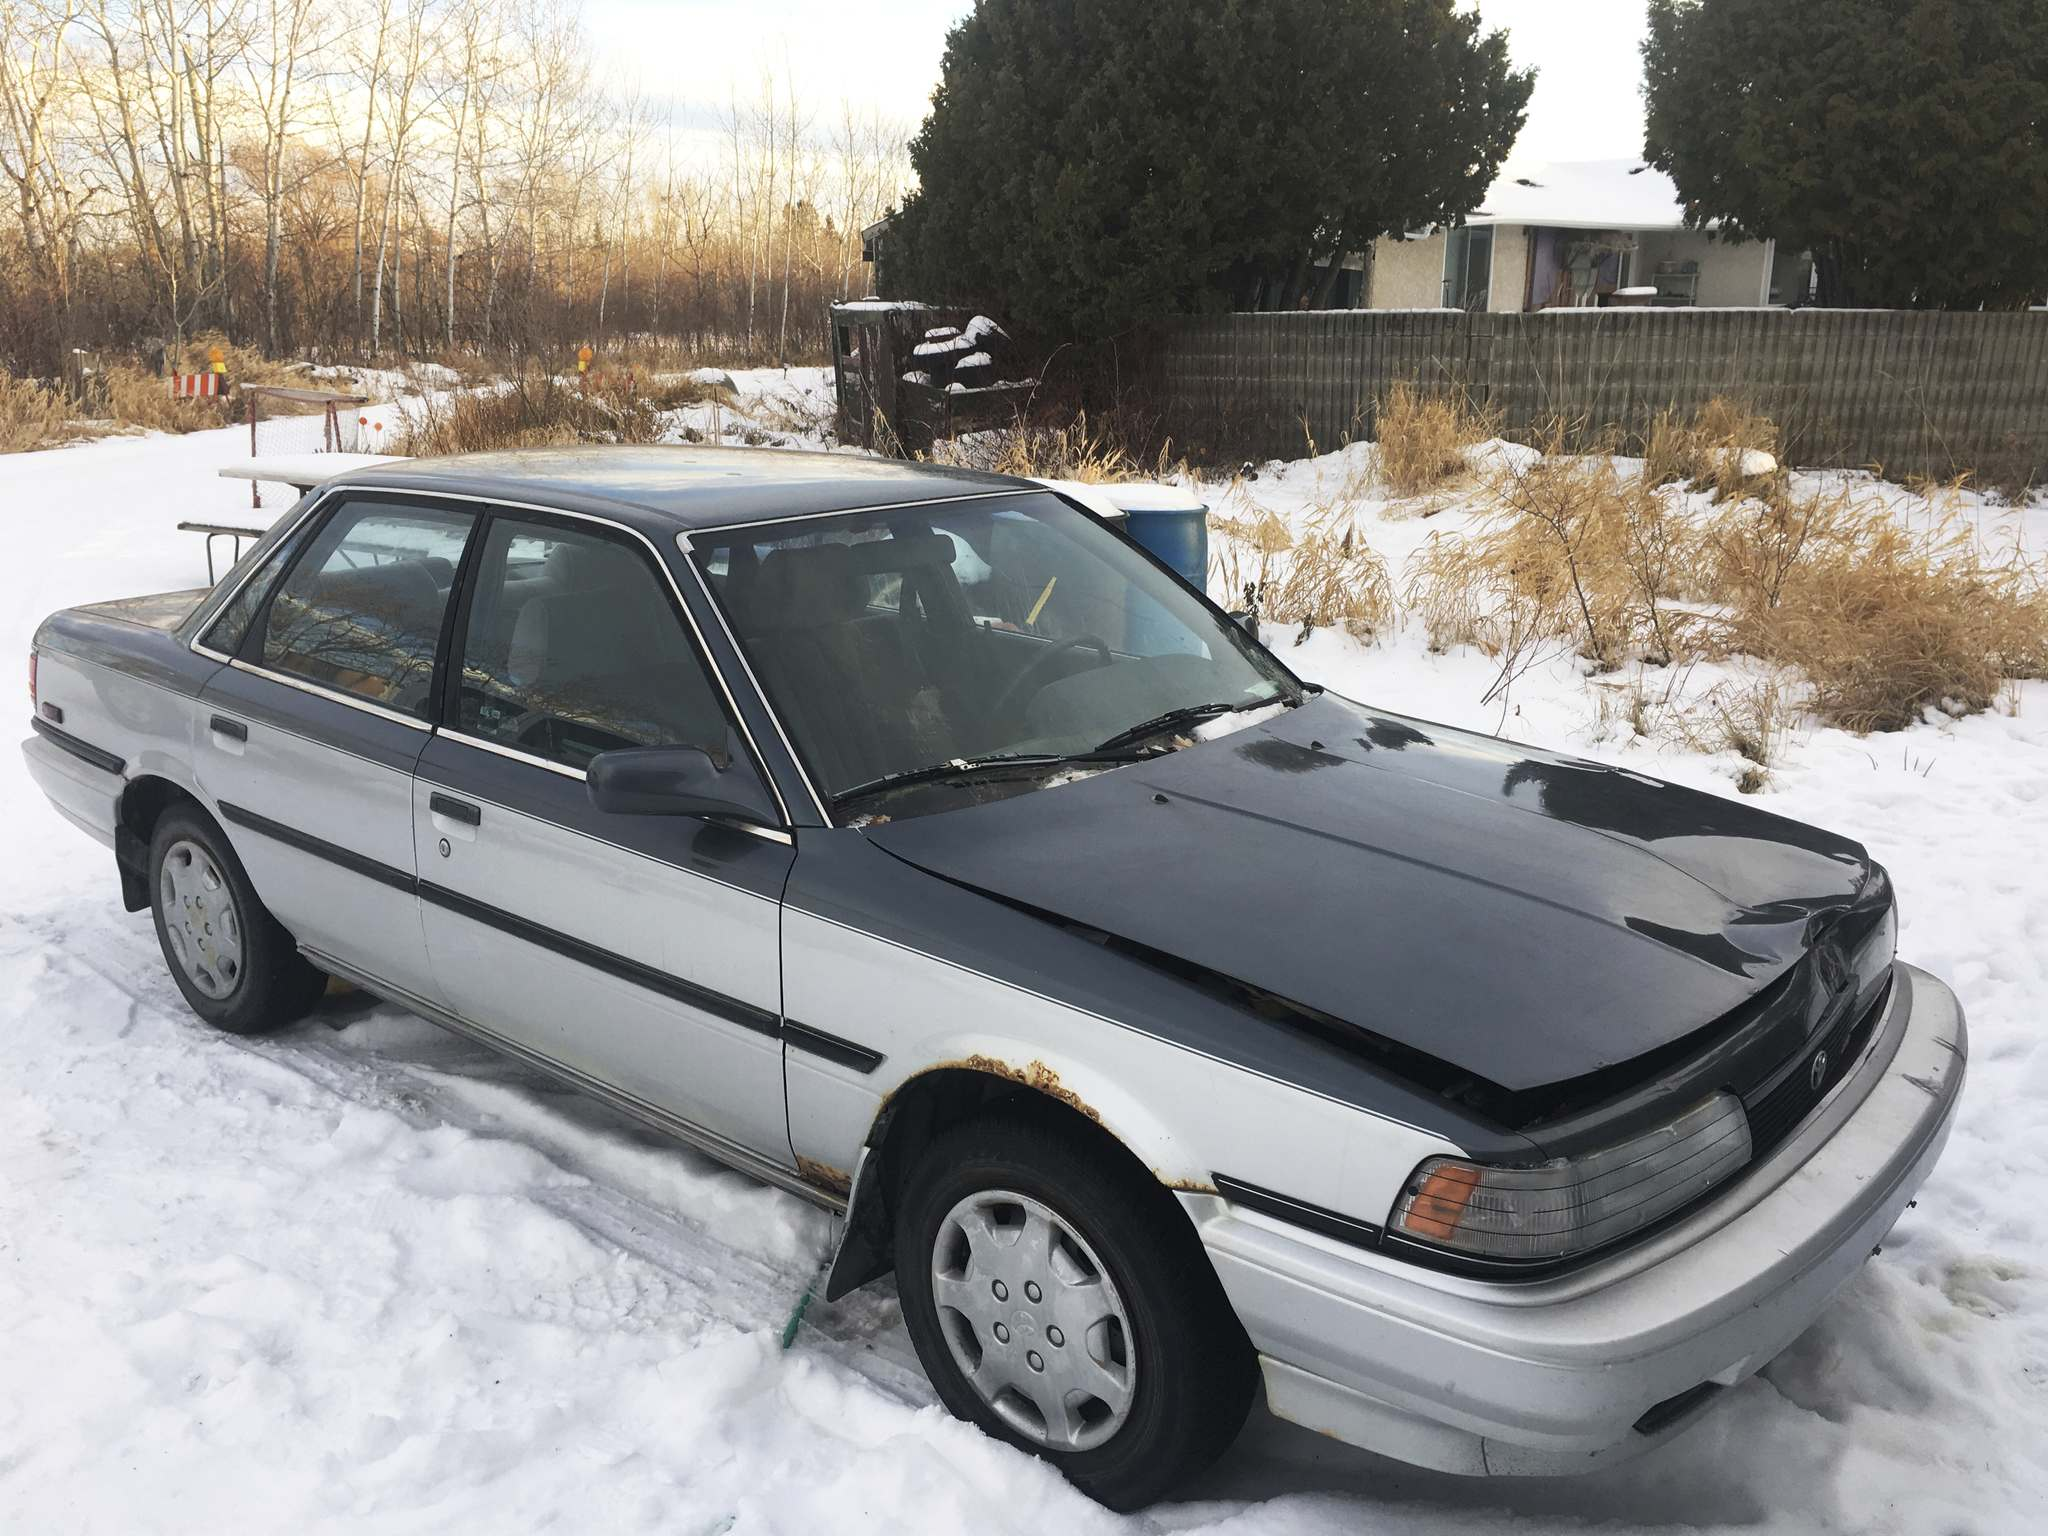 Photos by Willy Williamson / Winnipeg Free PressWilly recently rescued this battered 1991 Toyota Camry LE 4WD. Camrys of this vintage are known for their longevity, but the four-wheel-drive version is a rarity.